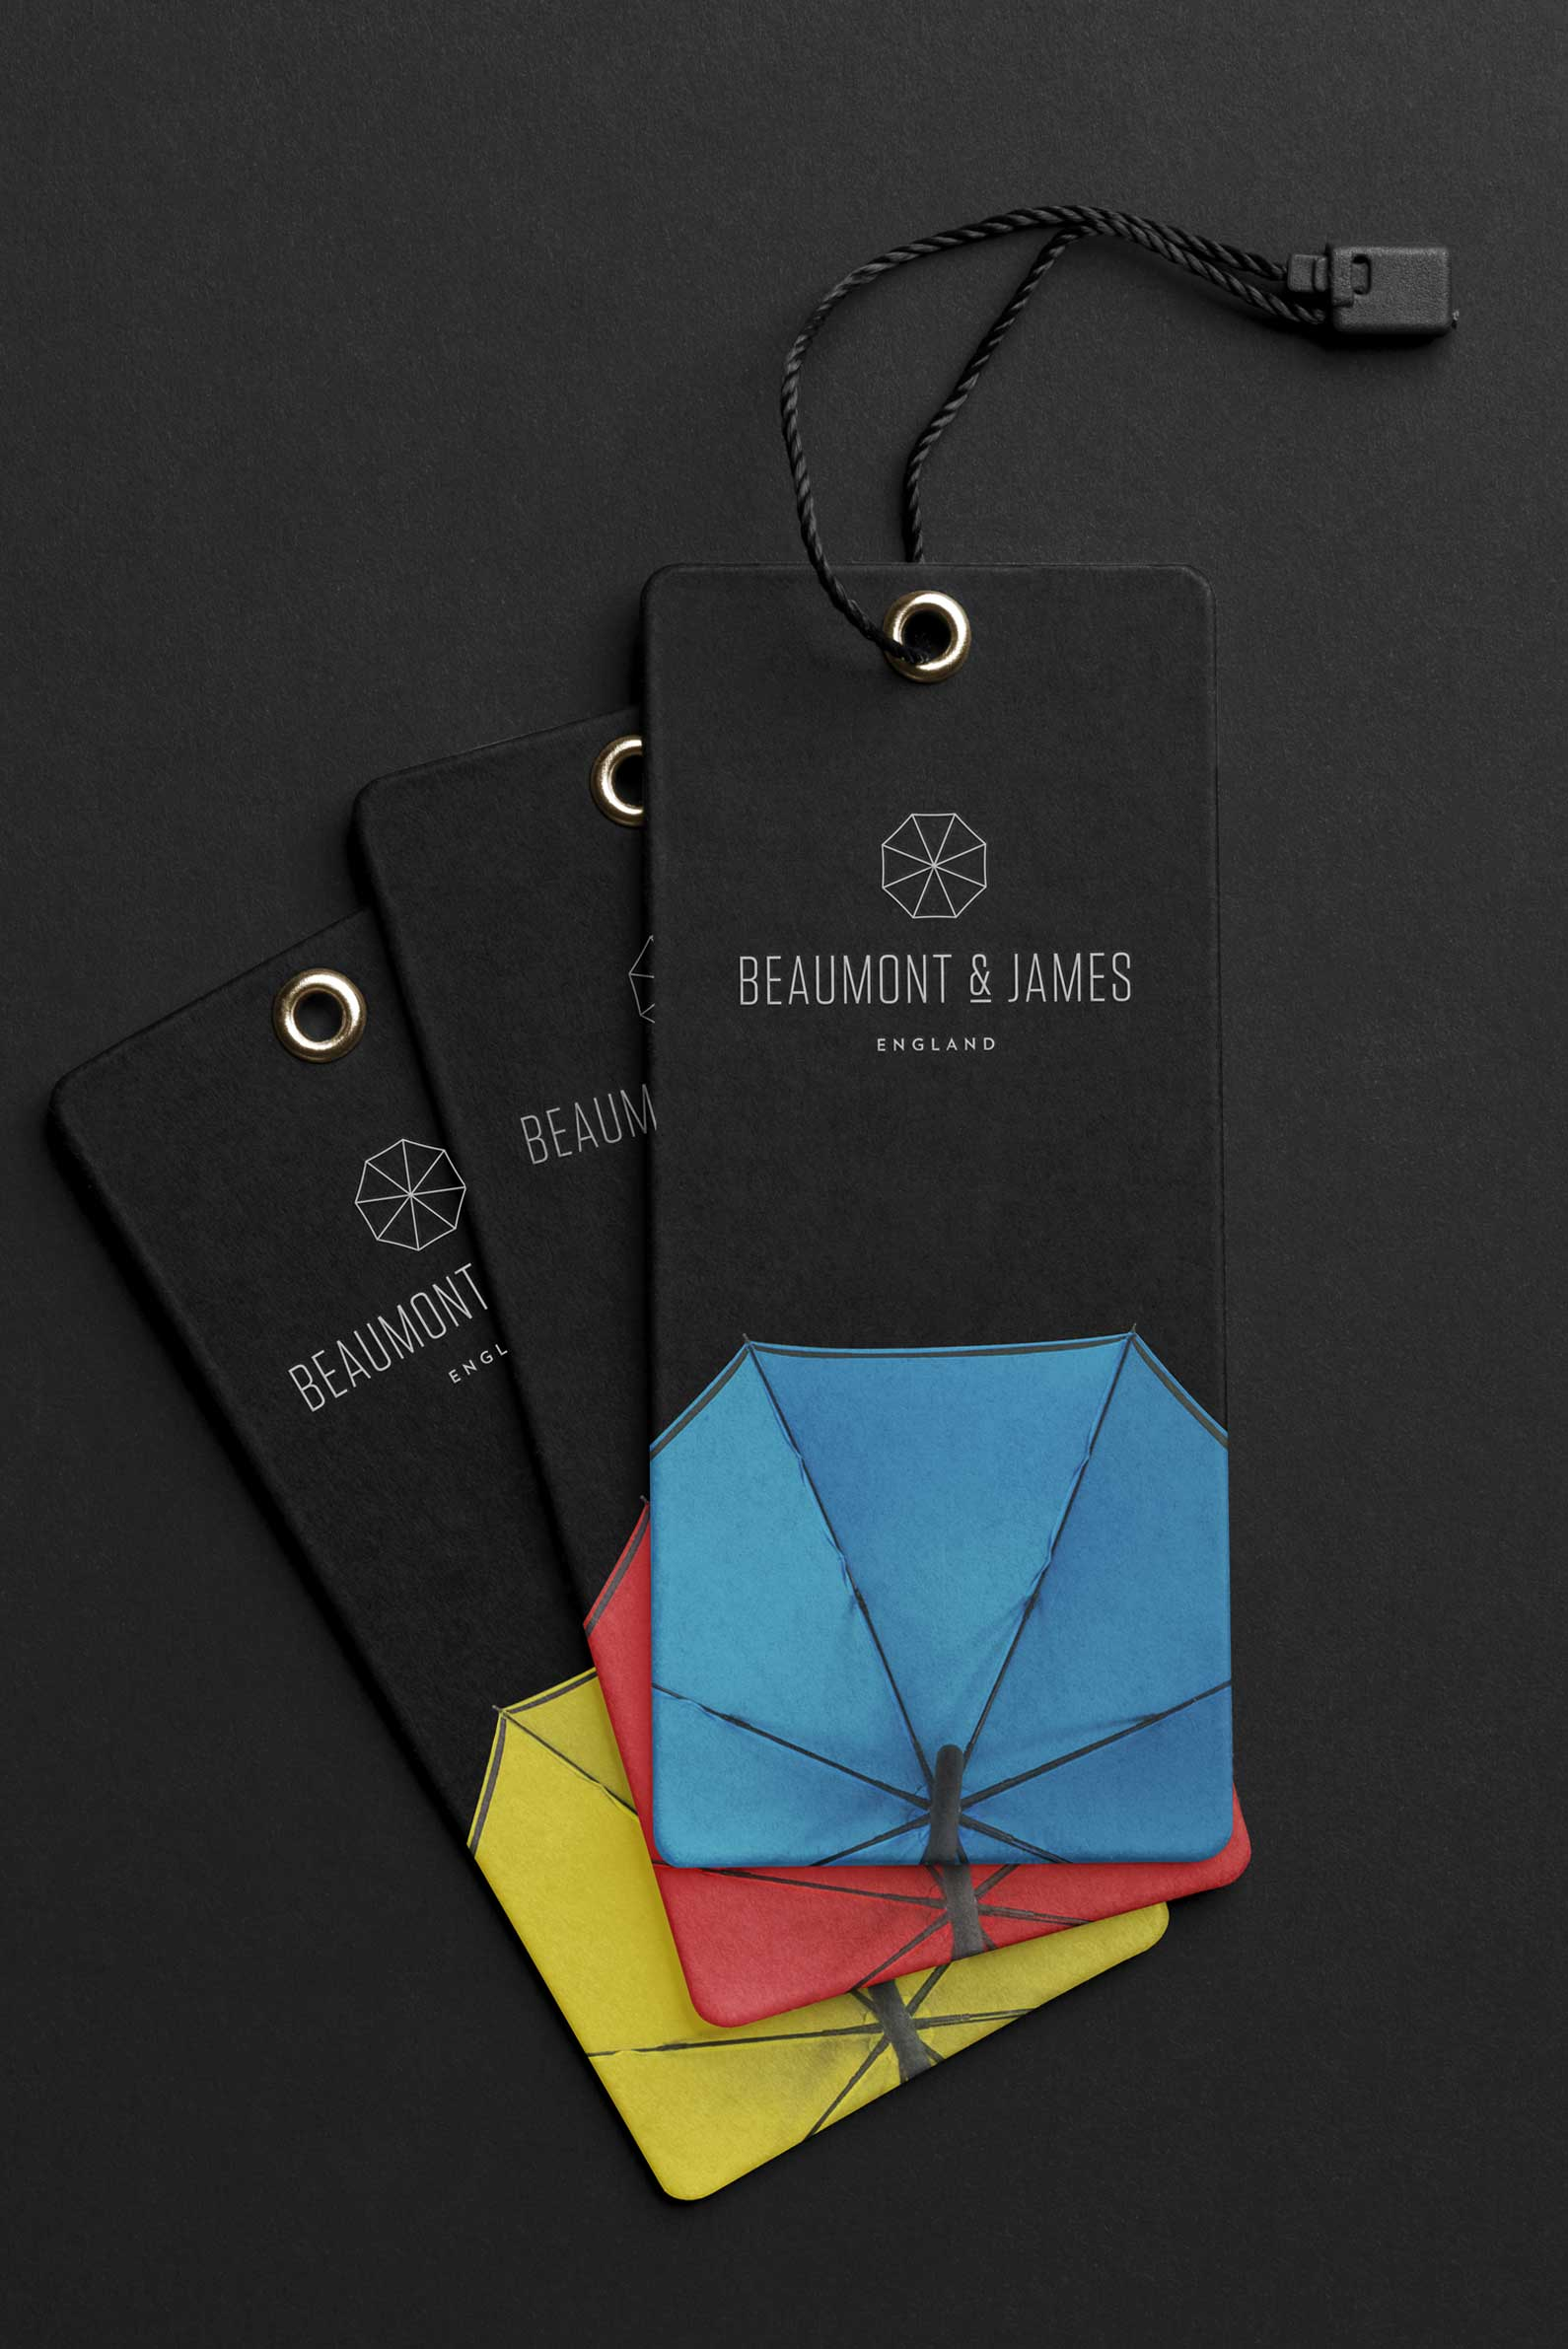 Fashion tags for beaumont and james